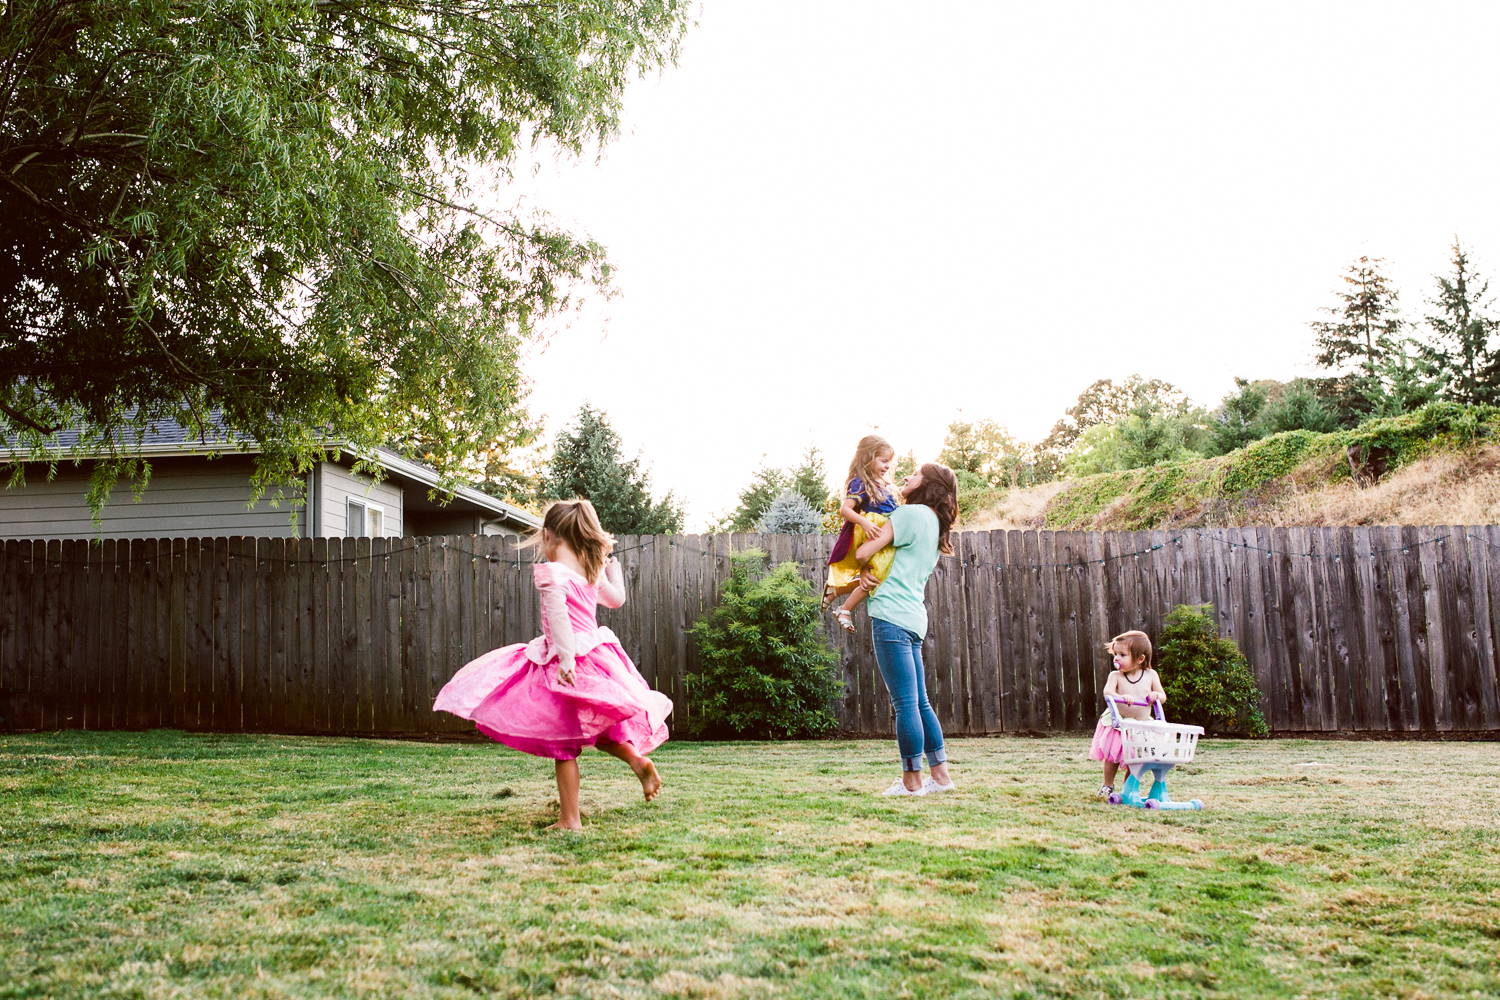 Mother and girls dancing in the backyard